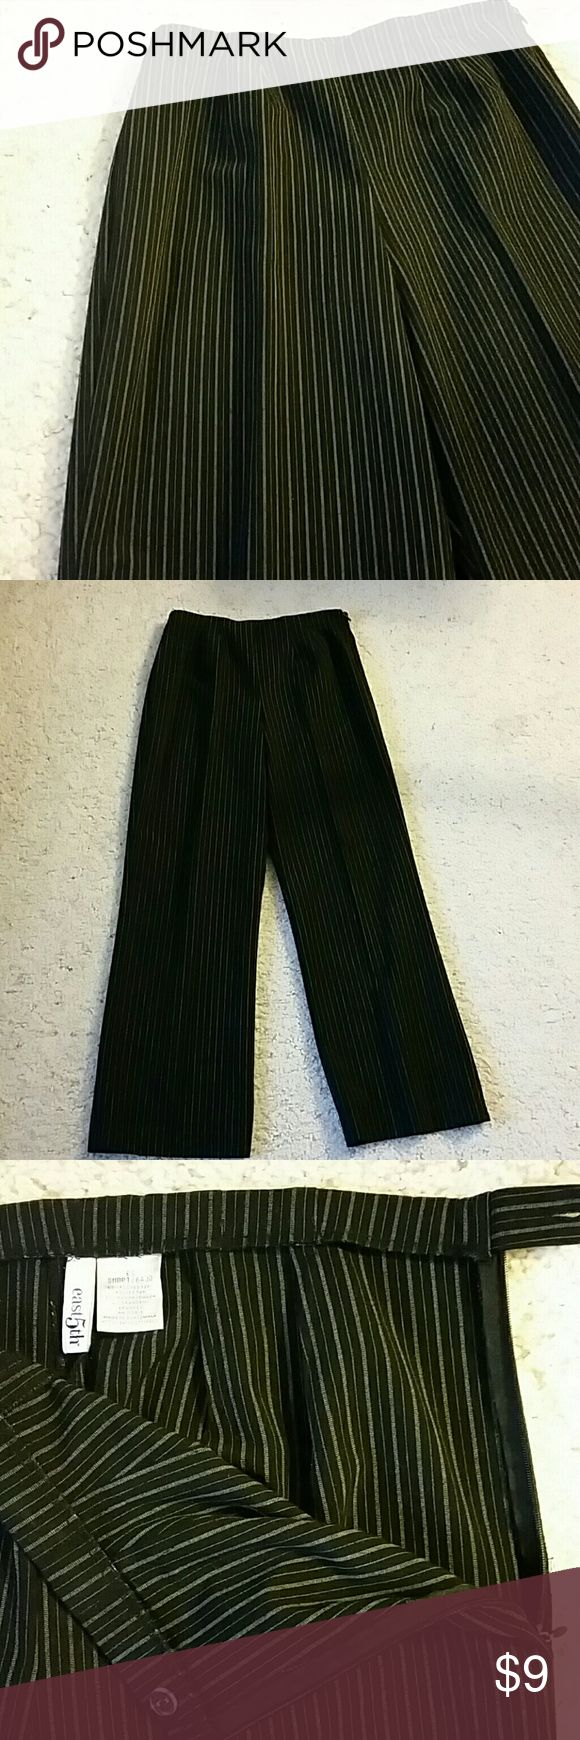 Black with gray pinstripes ladies slacks Zipper on left side. No pockets. Size 6 short. East 5th Pants Trousers